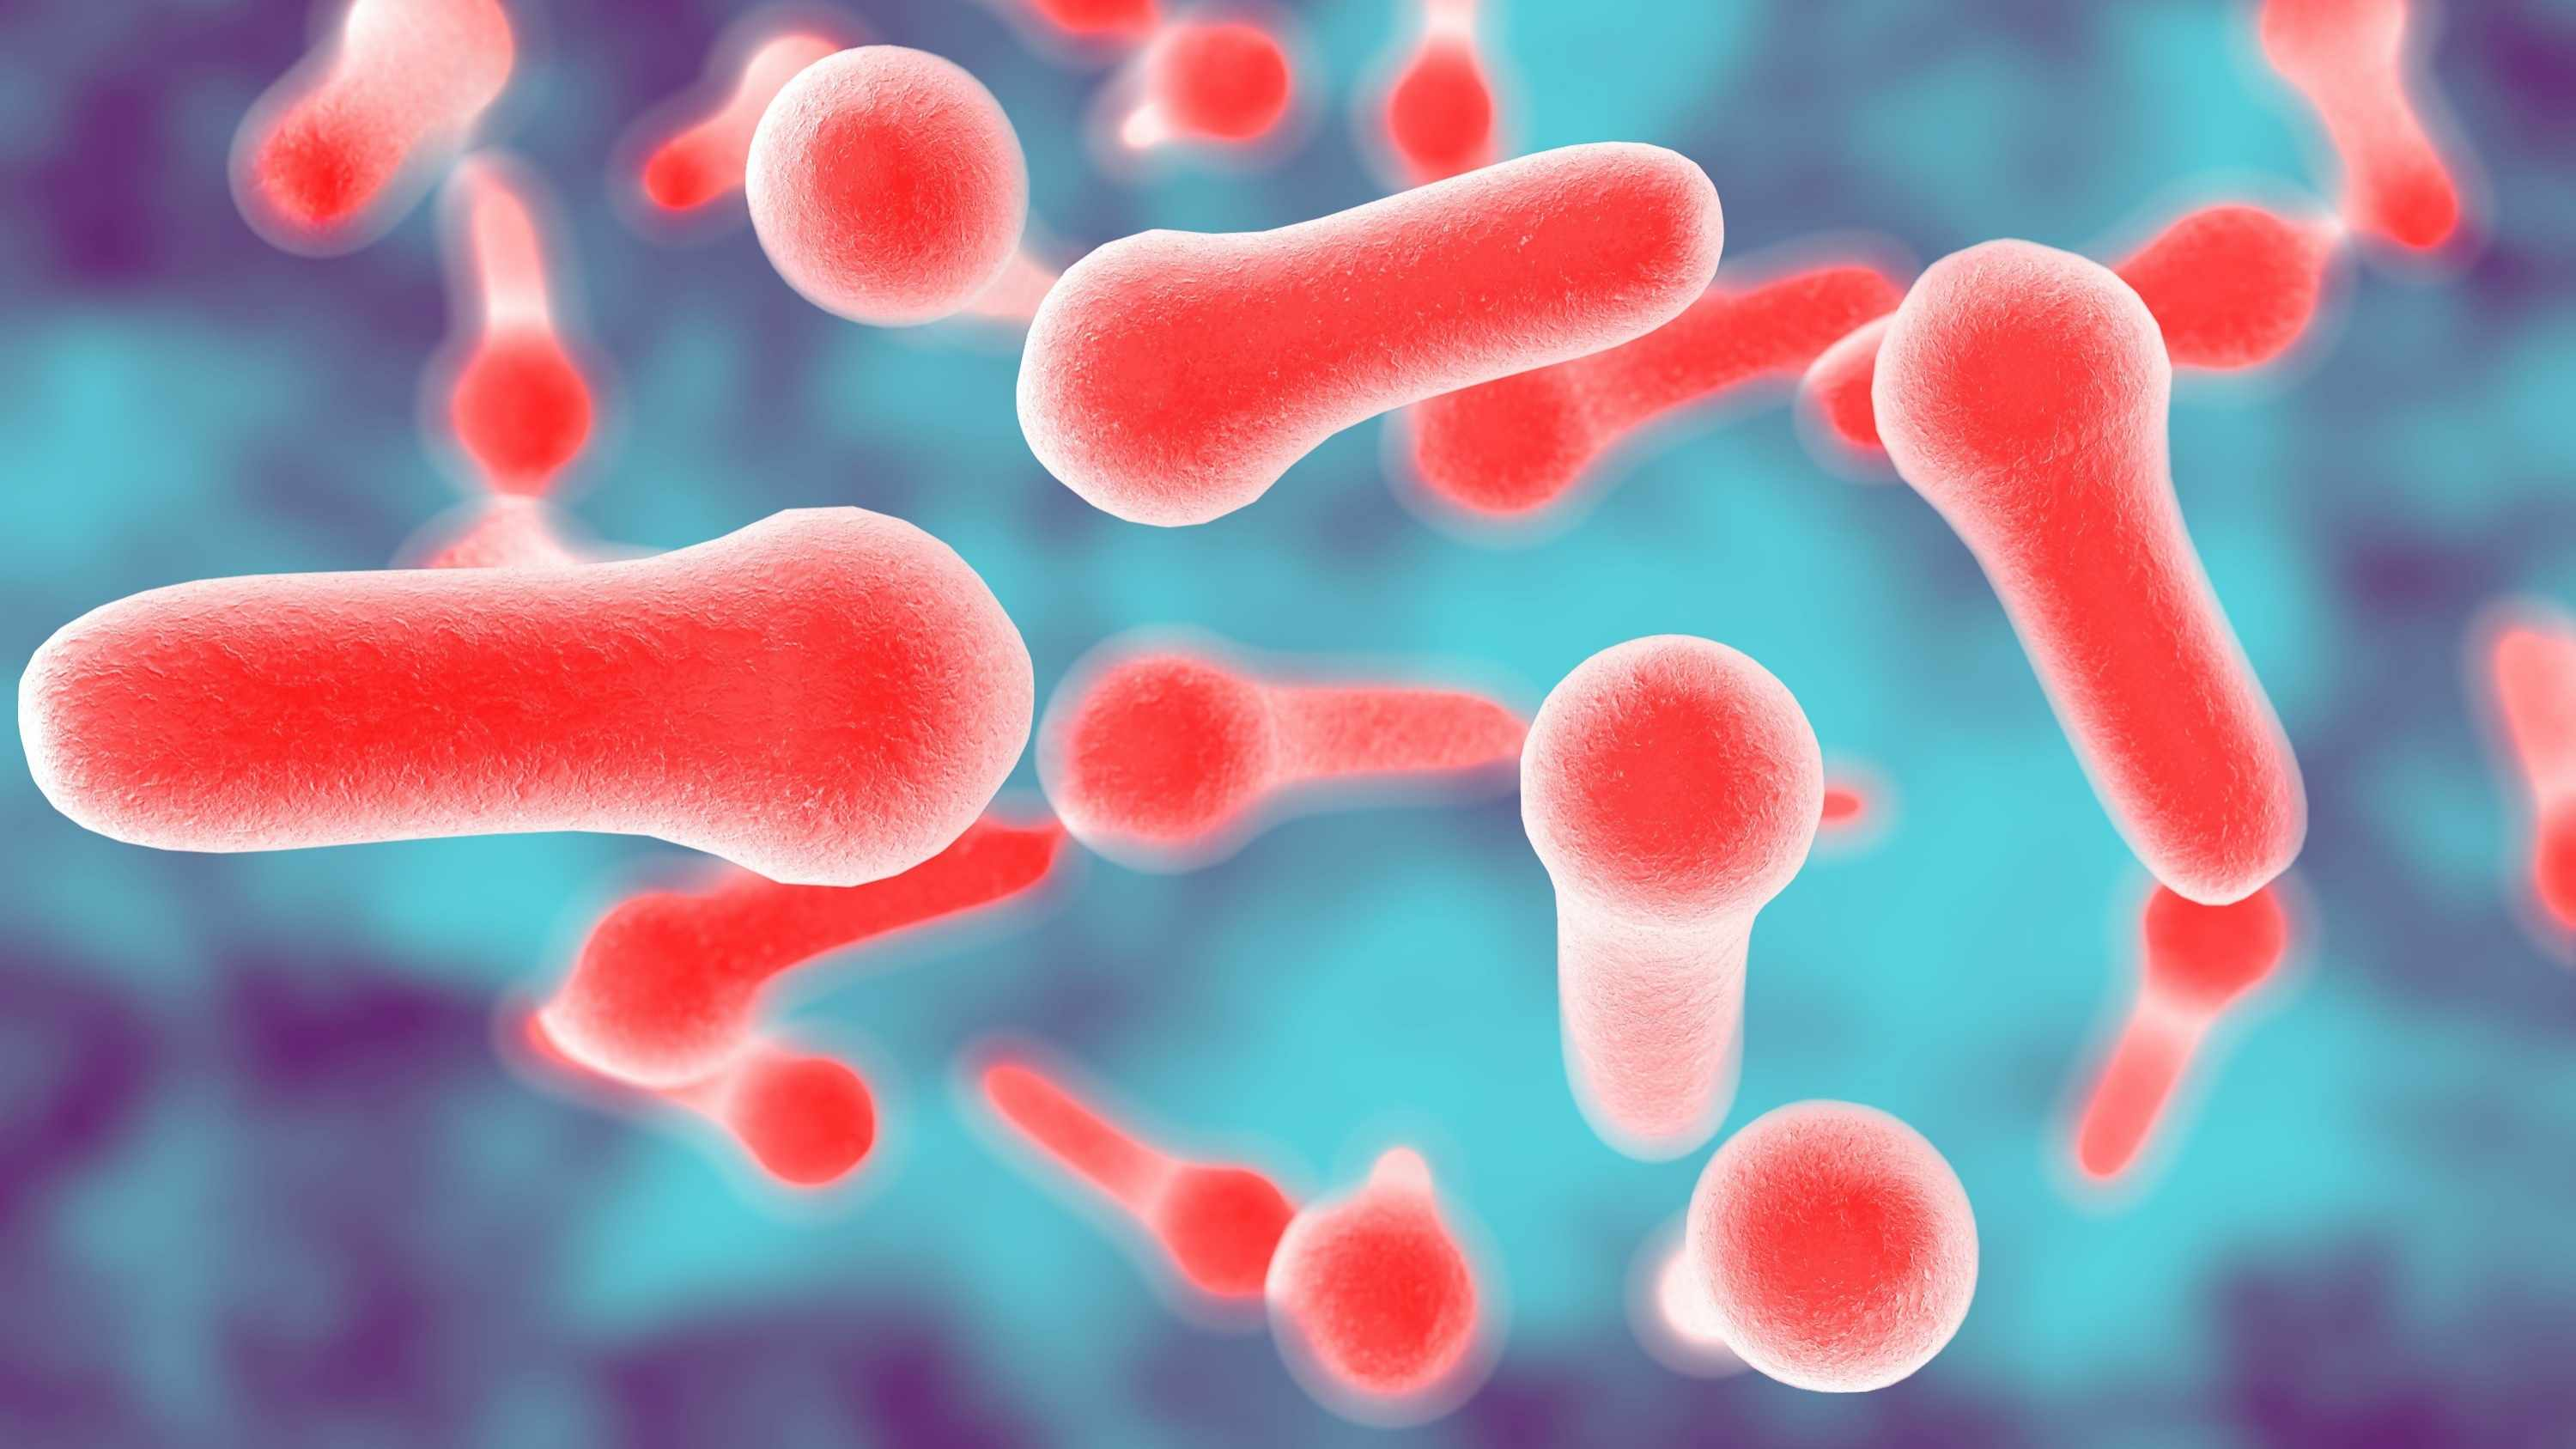 3D illustration of Clostridium bacteria which causes tetanus, botulism, gas gangrene and wound infection